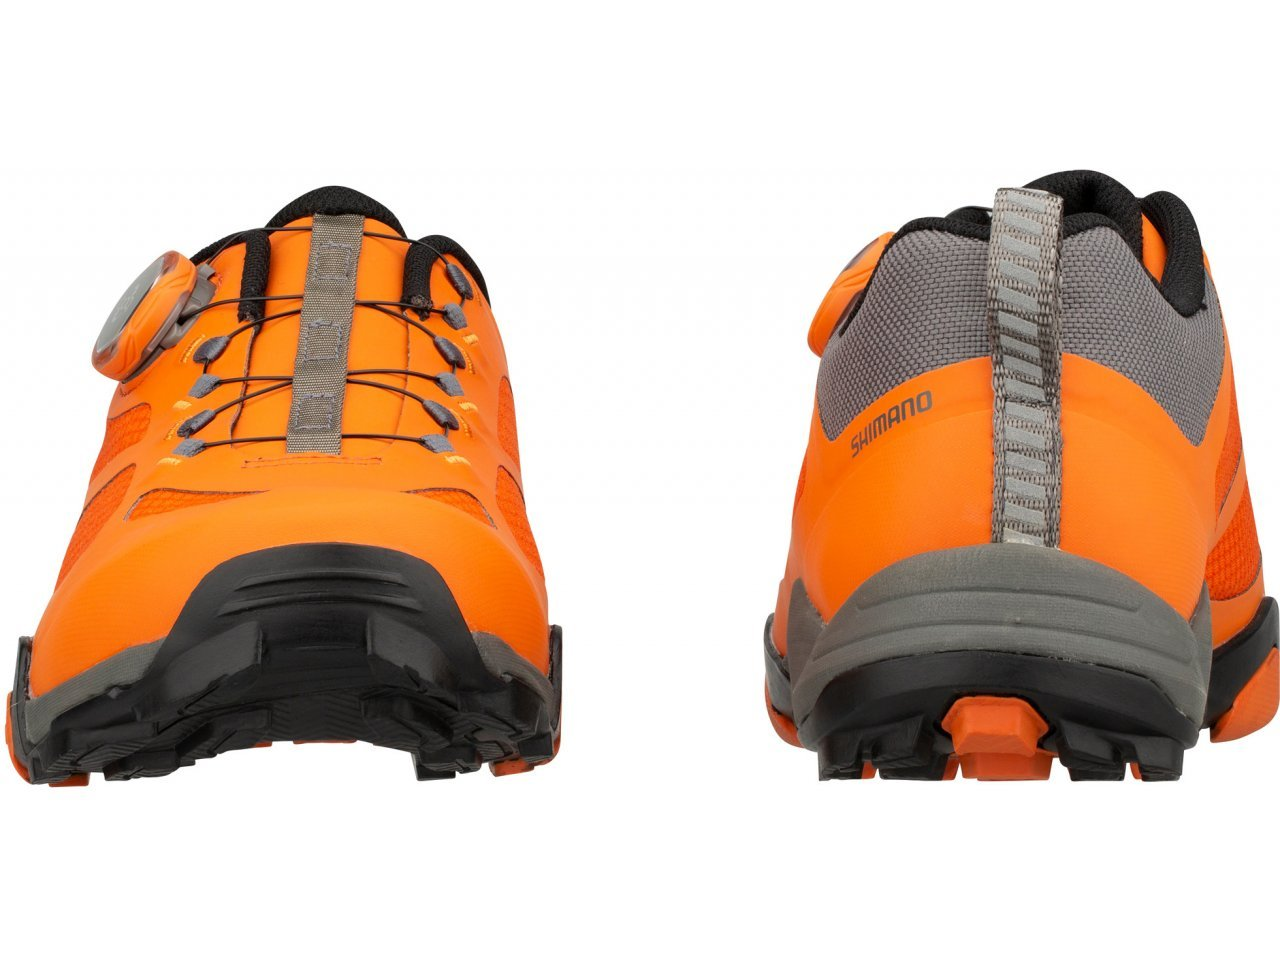 shimano-sh-mt7-mtb-touring-shoes-orange-42-60732-259061-1553699475